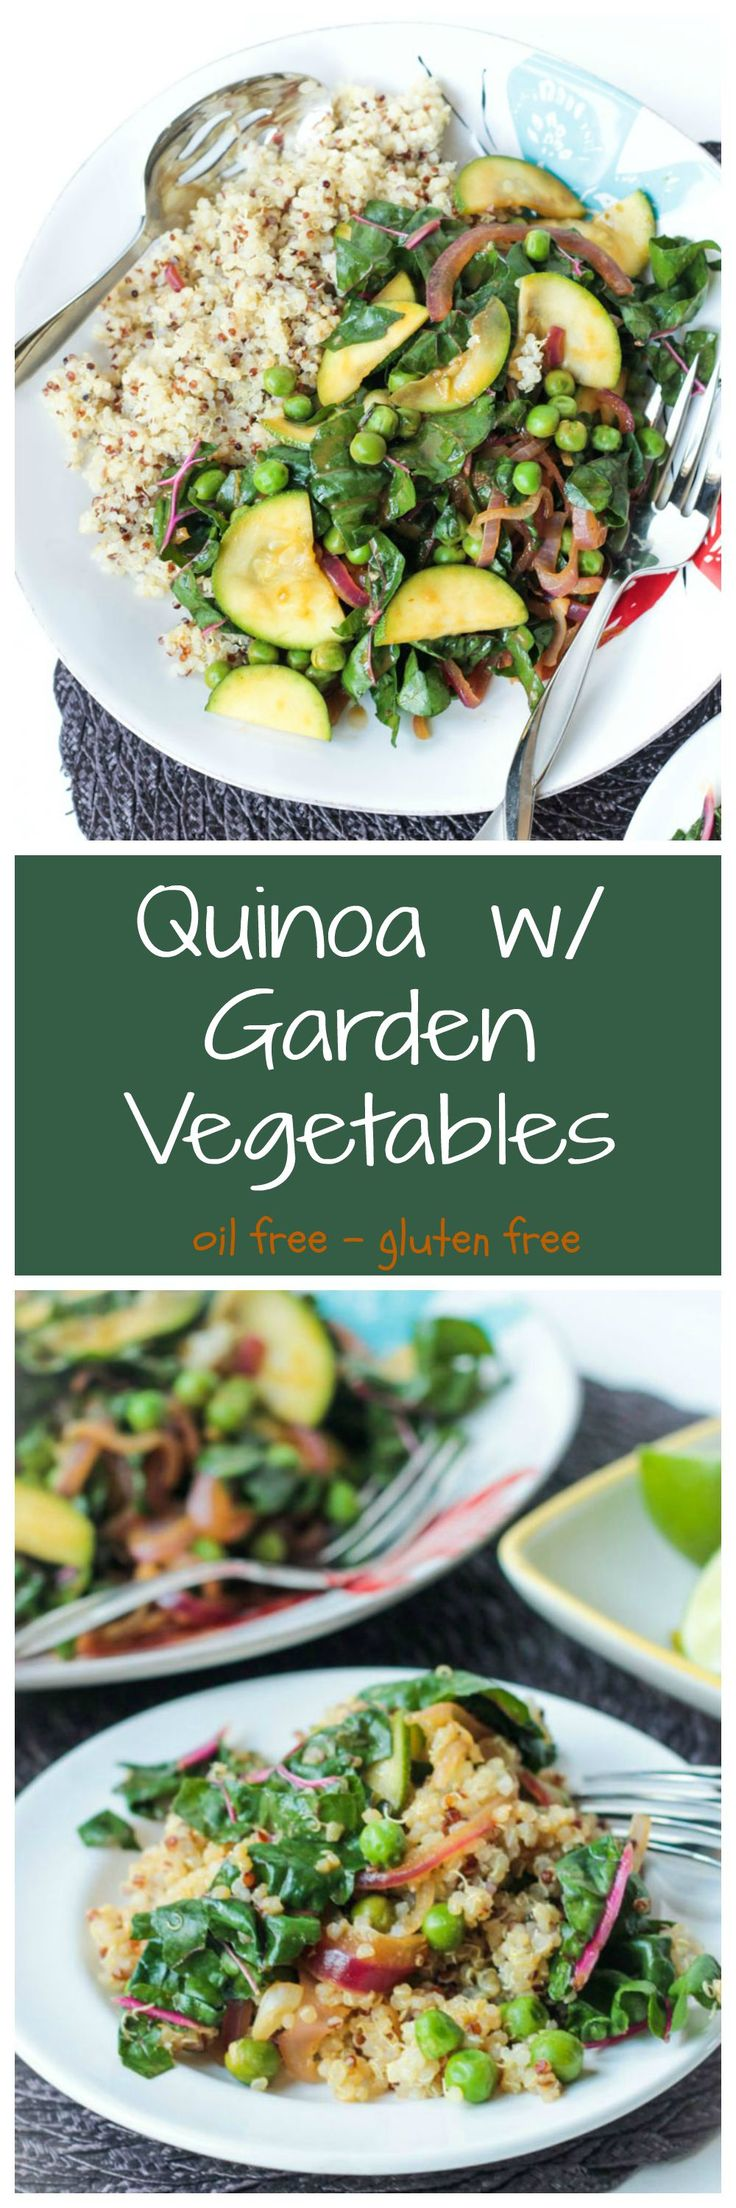 Quinoa w/ Garden Vegetables - taking advantage of the summer garden and full of plant protein, this dish is the perfect healthy side or light main meal.